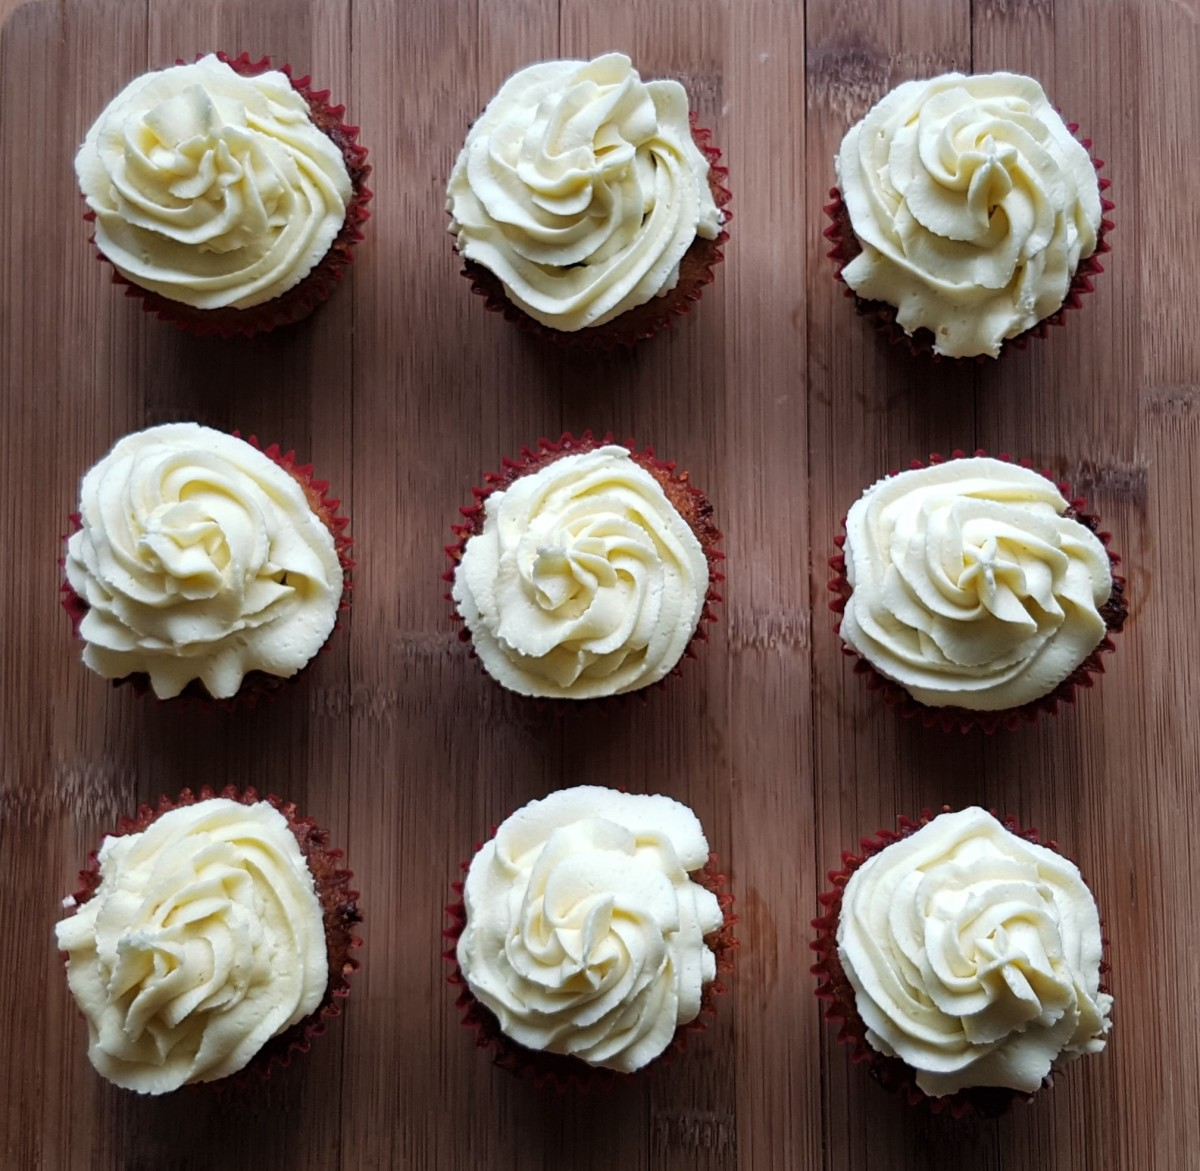 Easy Carrot Cake Cupcakes Recipe With Walnuts and White Chocolate Buttercream Frosting